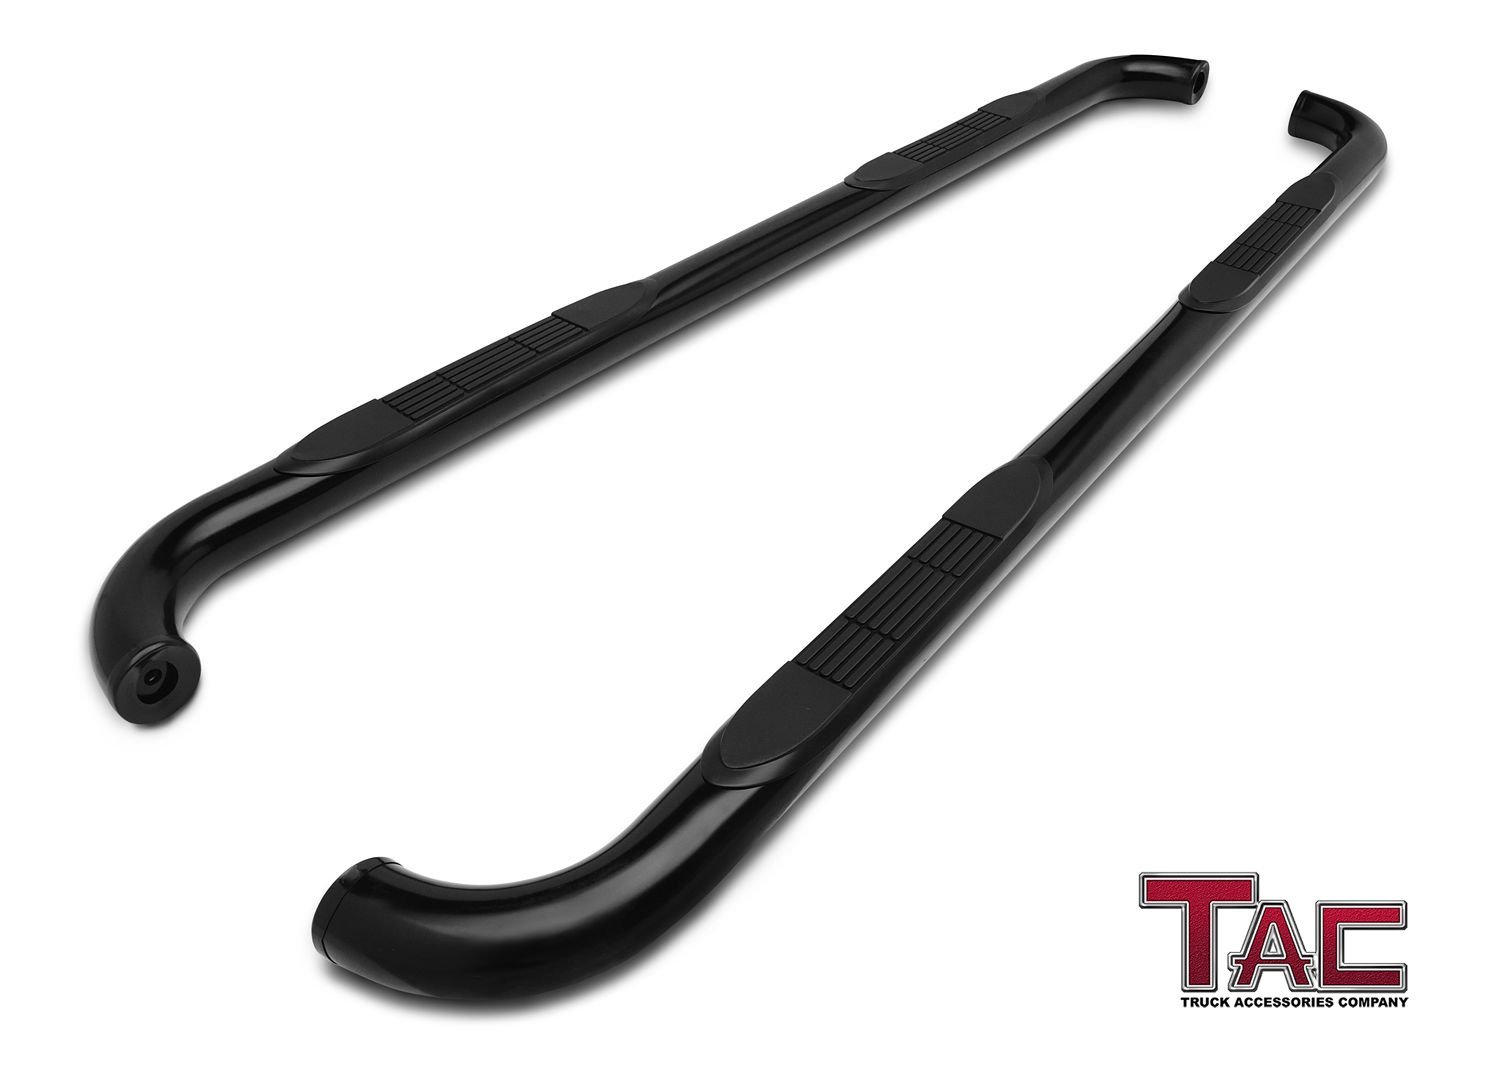 TAC Side Steps for 1998-2001 Dodge Ram 1500/2500/3500 Quad Cab / 1994-2001  Dodge Ram 1500/2500/3500 Club Cab Truck Pickup 3